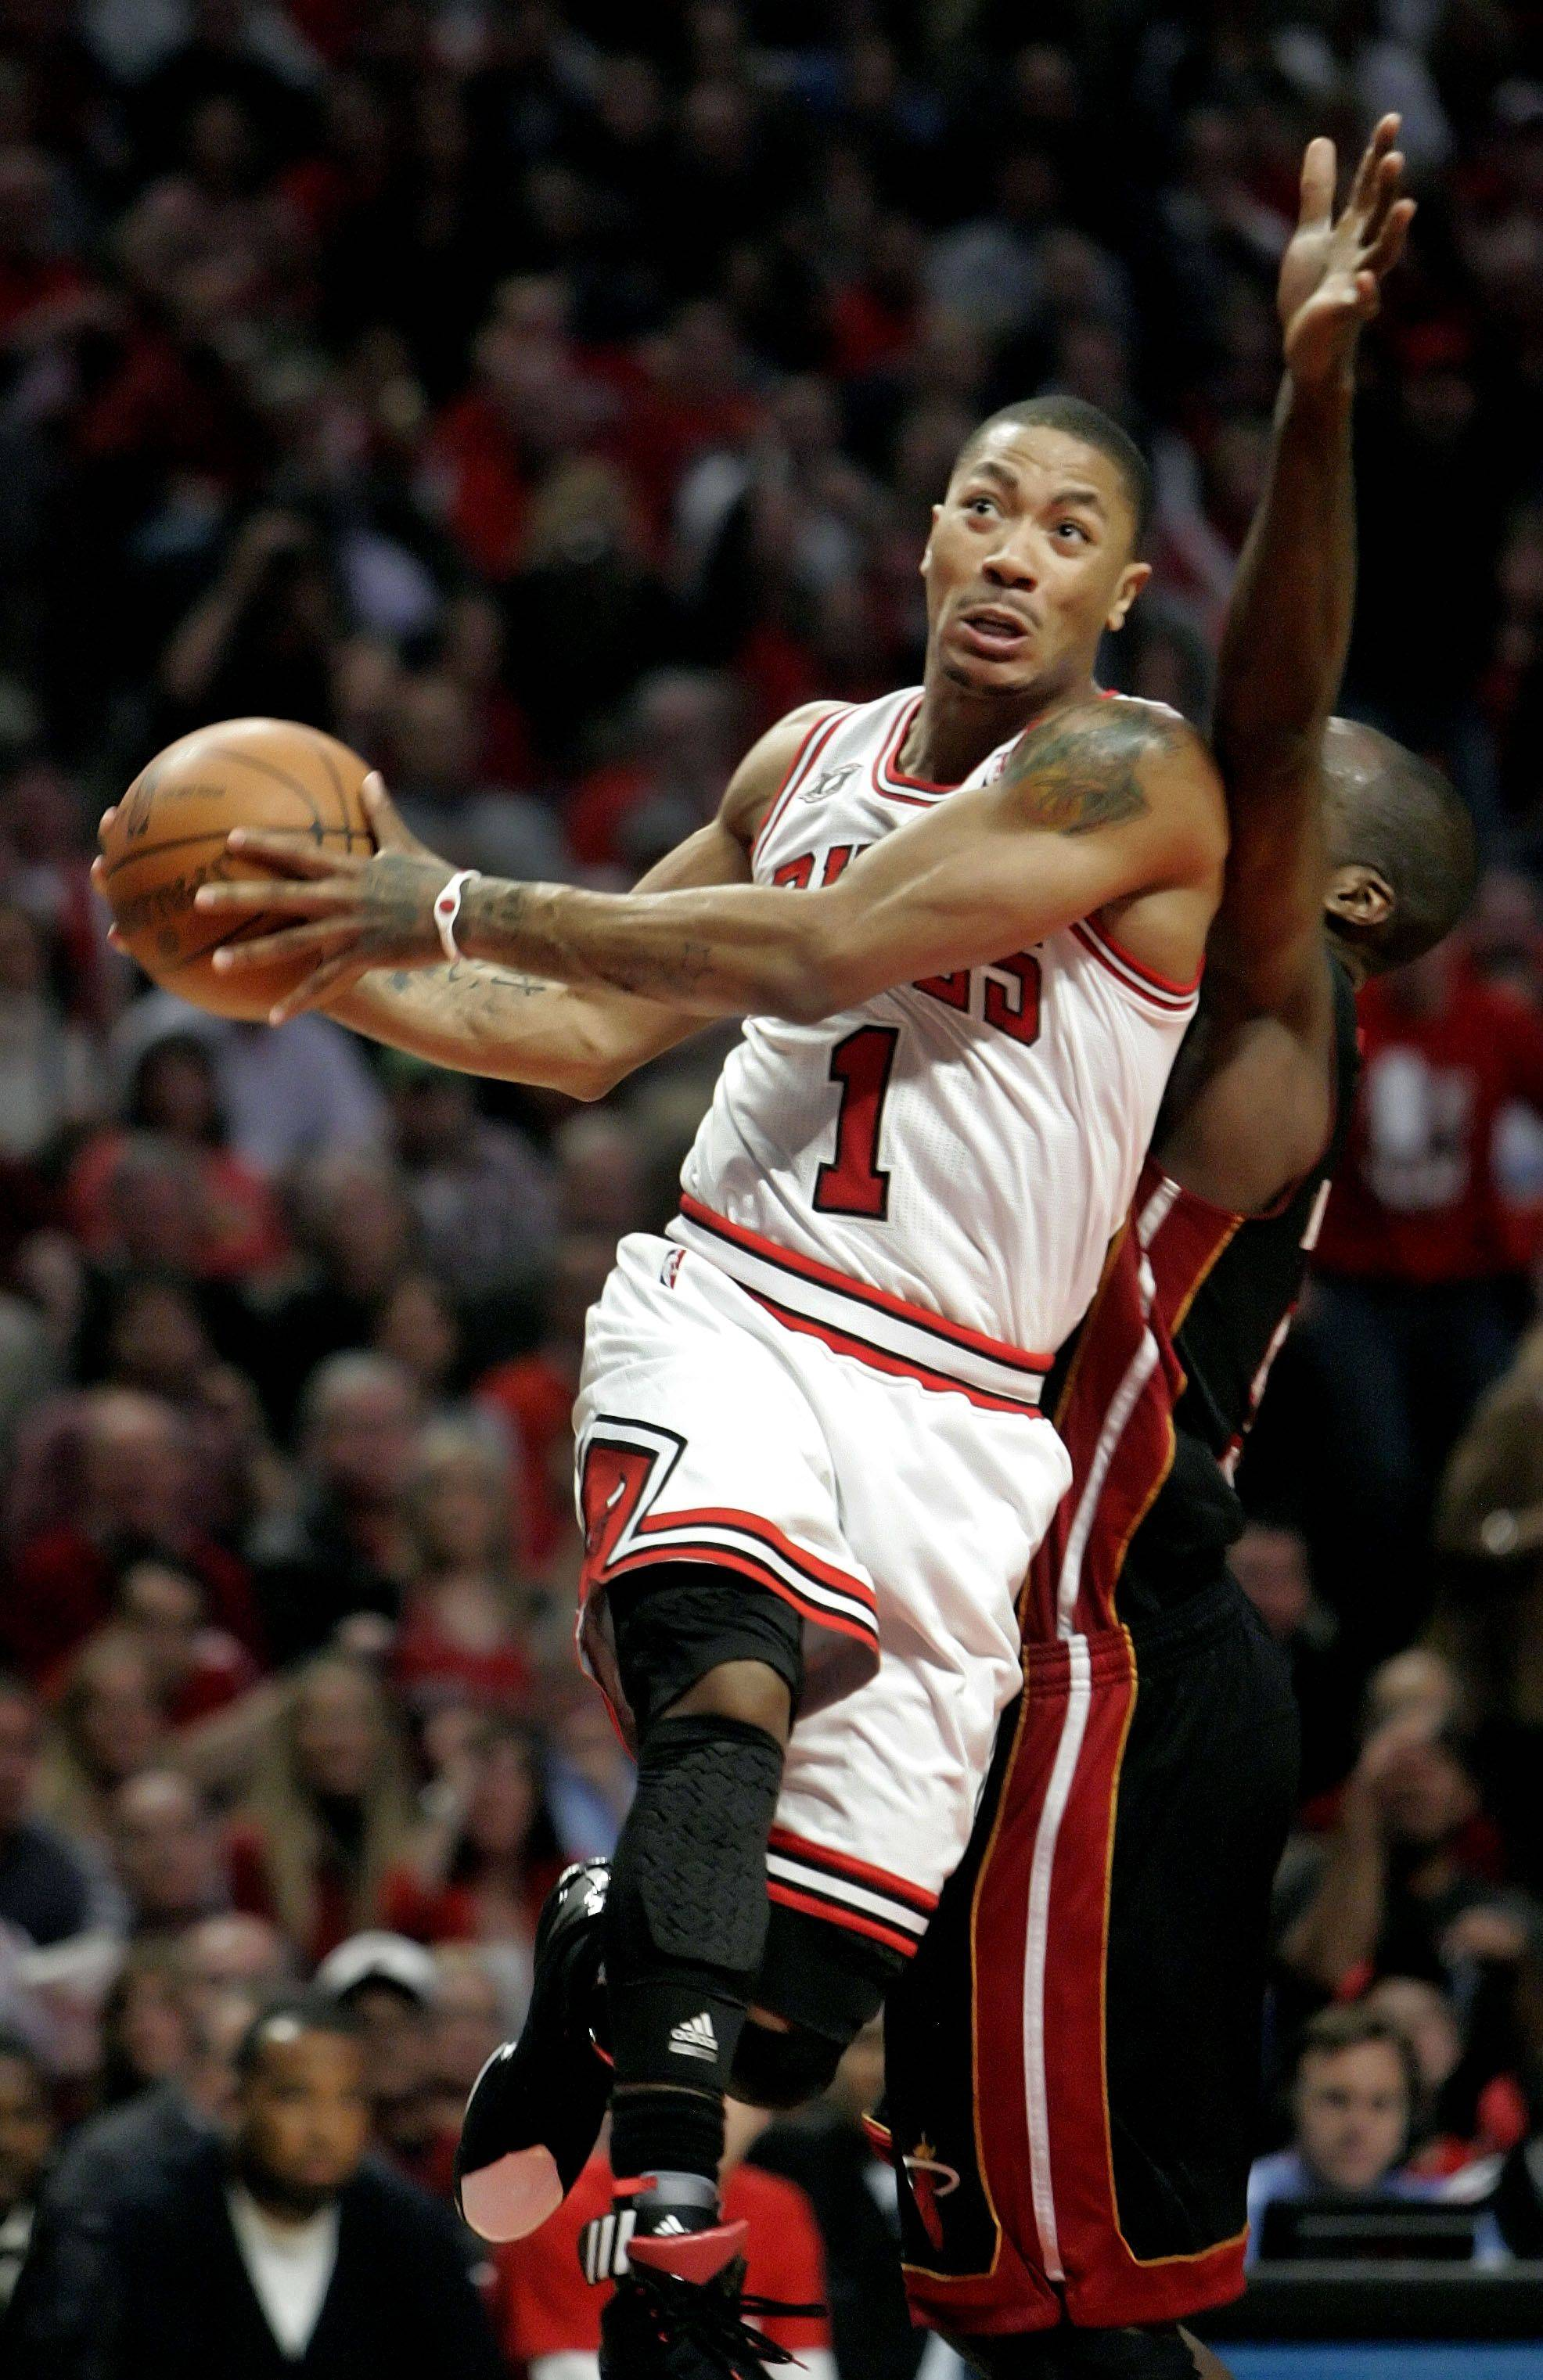 Chicago Bulls point guard Derrick Rose drives on Miami Heat center Joel Anthony.